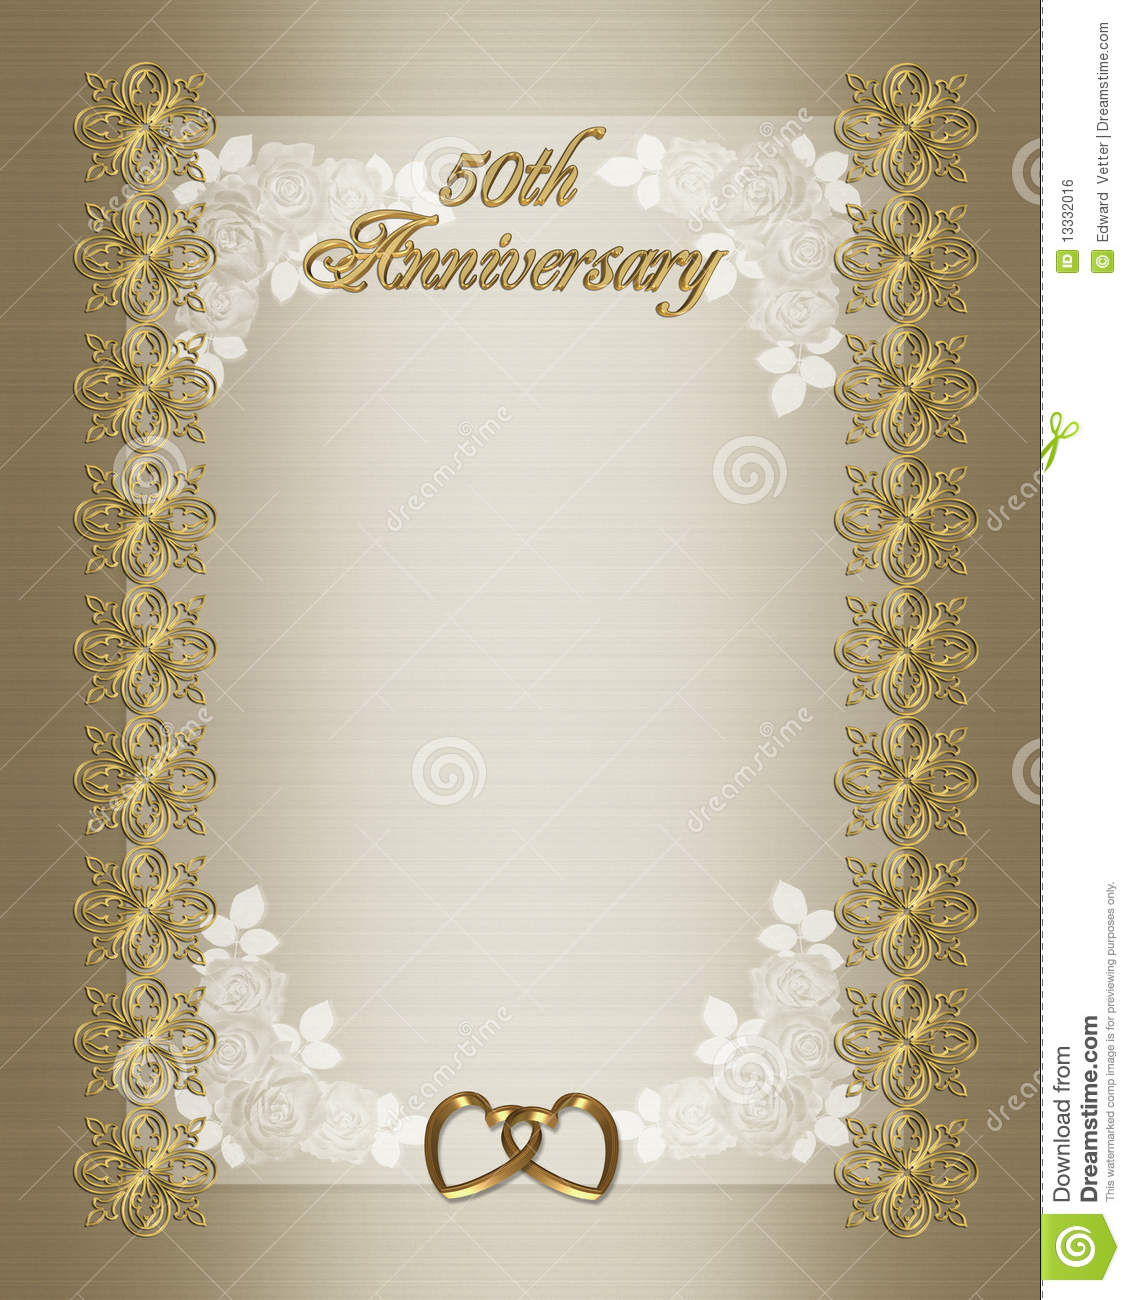 Royalty Free Stock Image: 50th Wedding anniversary invitation template